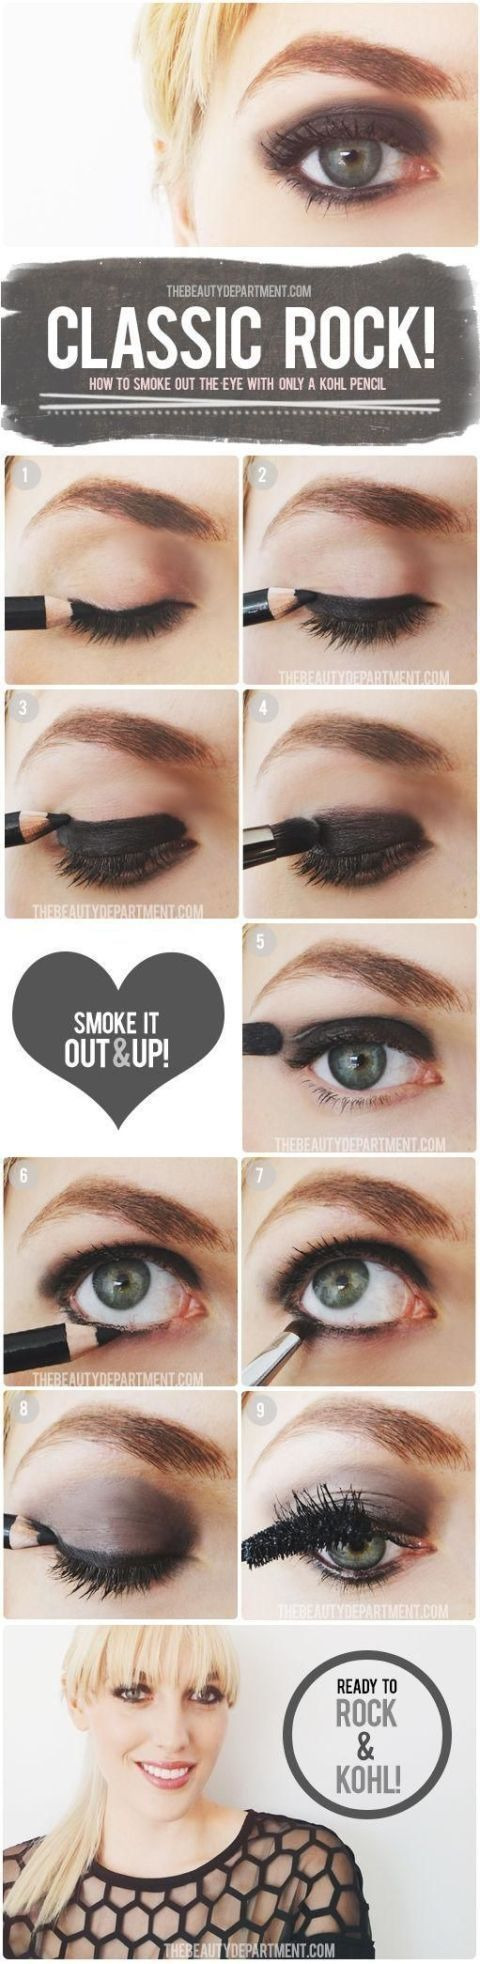 Best eye makeup tutorials party season hair and beauty pinterest